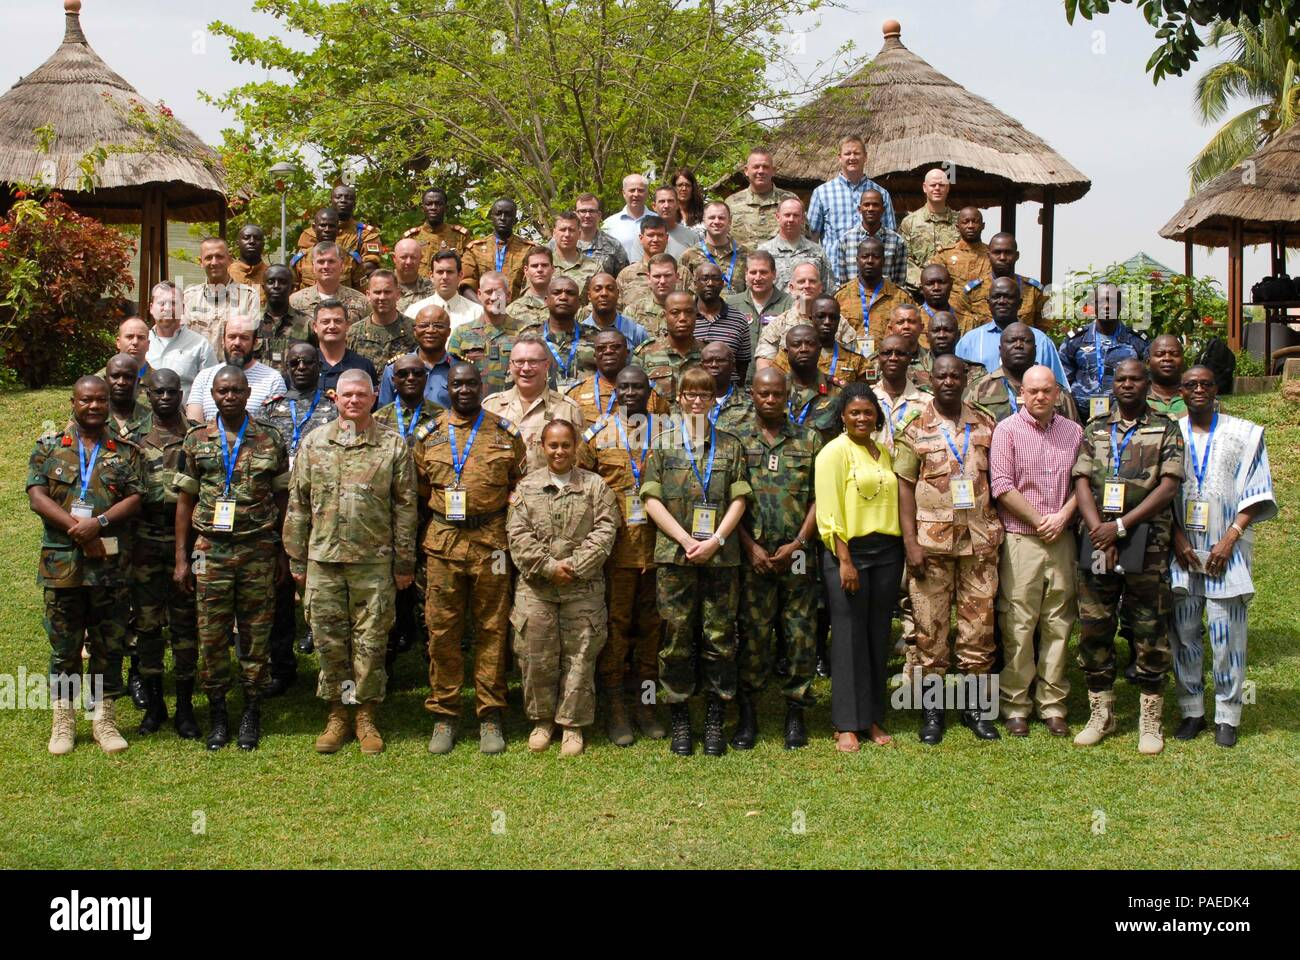 Military Representatives from various African and European countries met for the Western Accord 2016 Final Planning Event in Ouagadougou, Burkina Faso March 21-25, finalized details for the upcoming May exercise. WA 2016 is a two-week exercise with regional African partners and their Western allies designed to strengthen partnerships, enhance capacity and capabilities to conduct joint multinational peacekeeping operations in West Africa. (U.S. Army Africa photo by Sgt. 1st Class Chris Bridson) - Stock Image